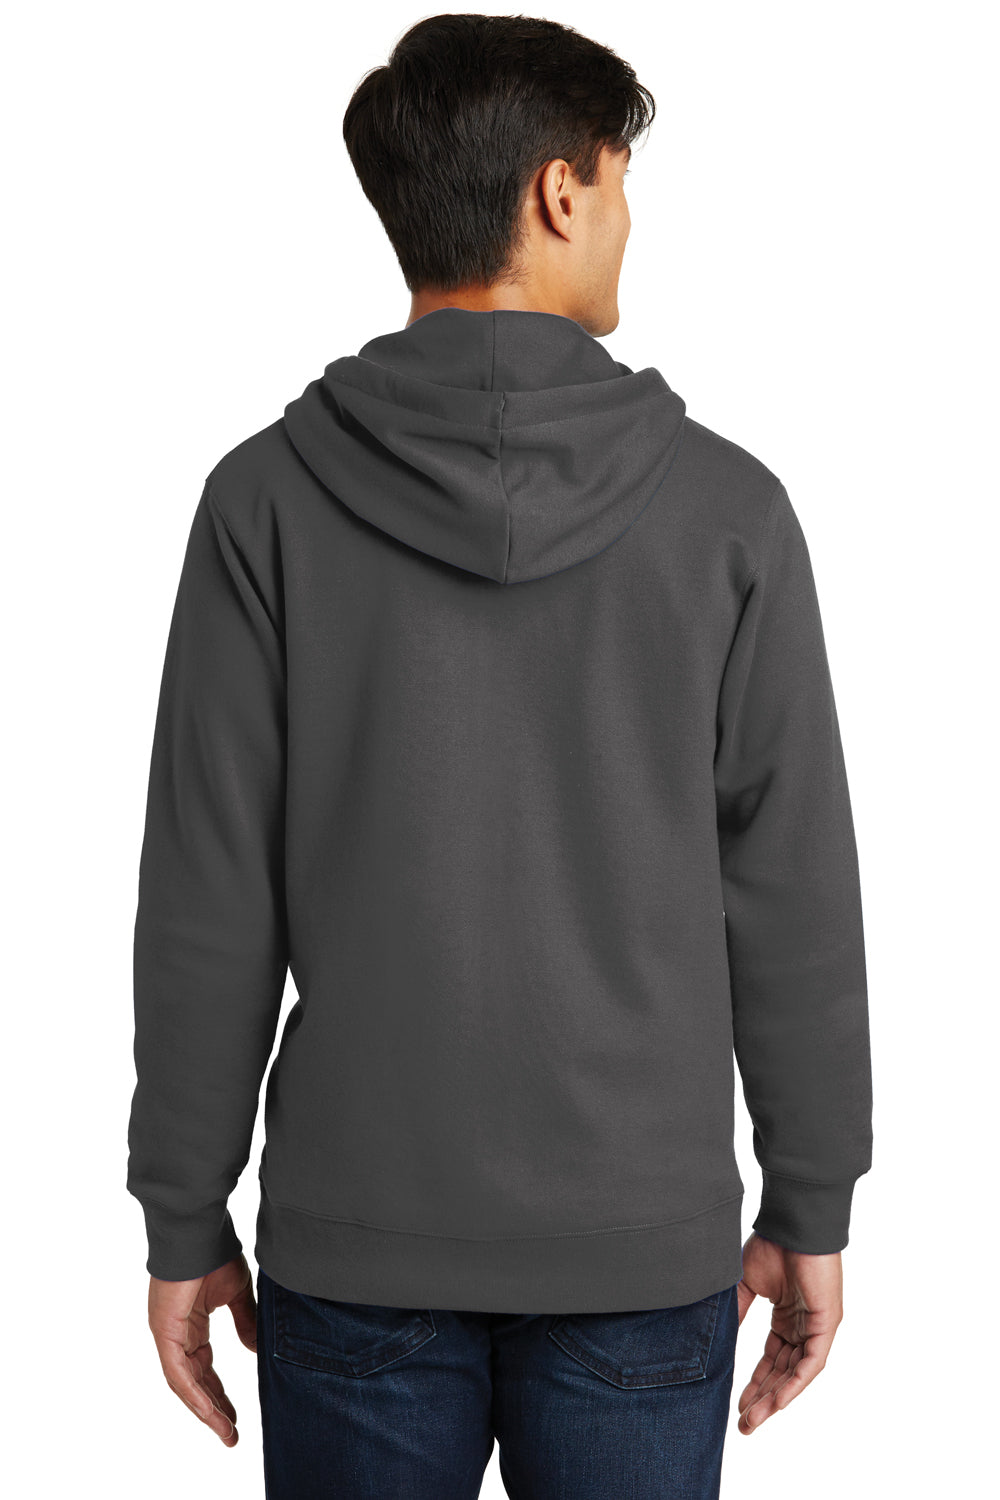 Port & Company PC850ZH Mens Fan Favorite Fleece Full Zip Hooded Sweatshirt Hoodie Charcoal Grey Back